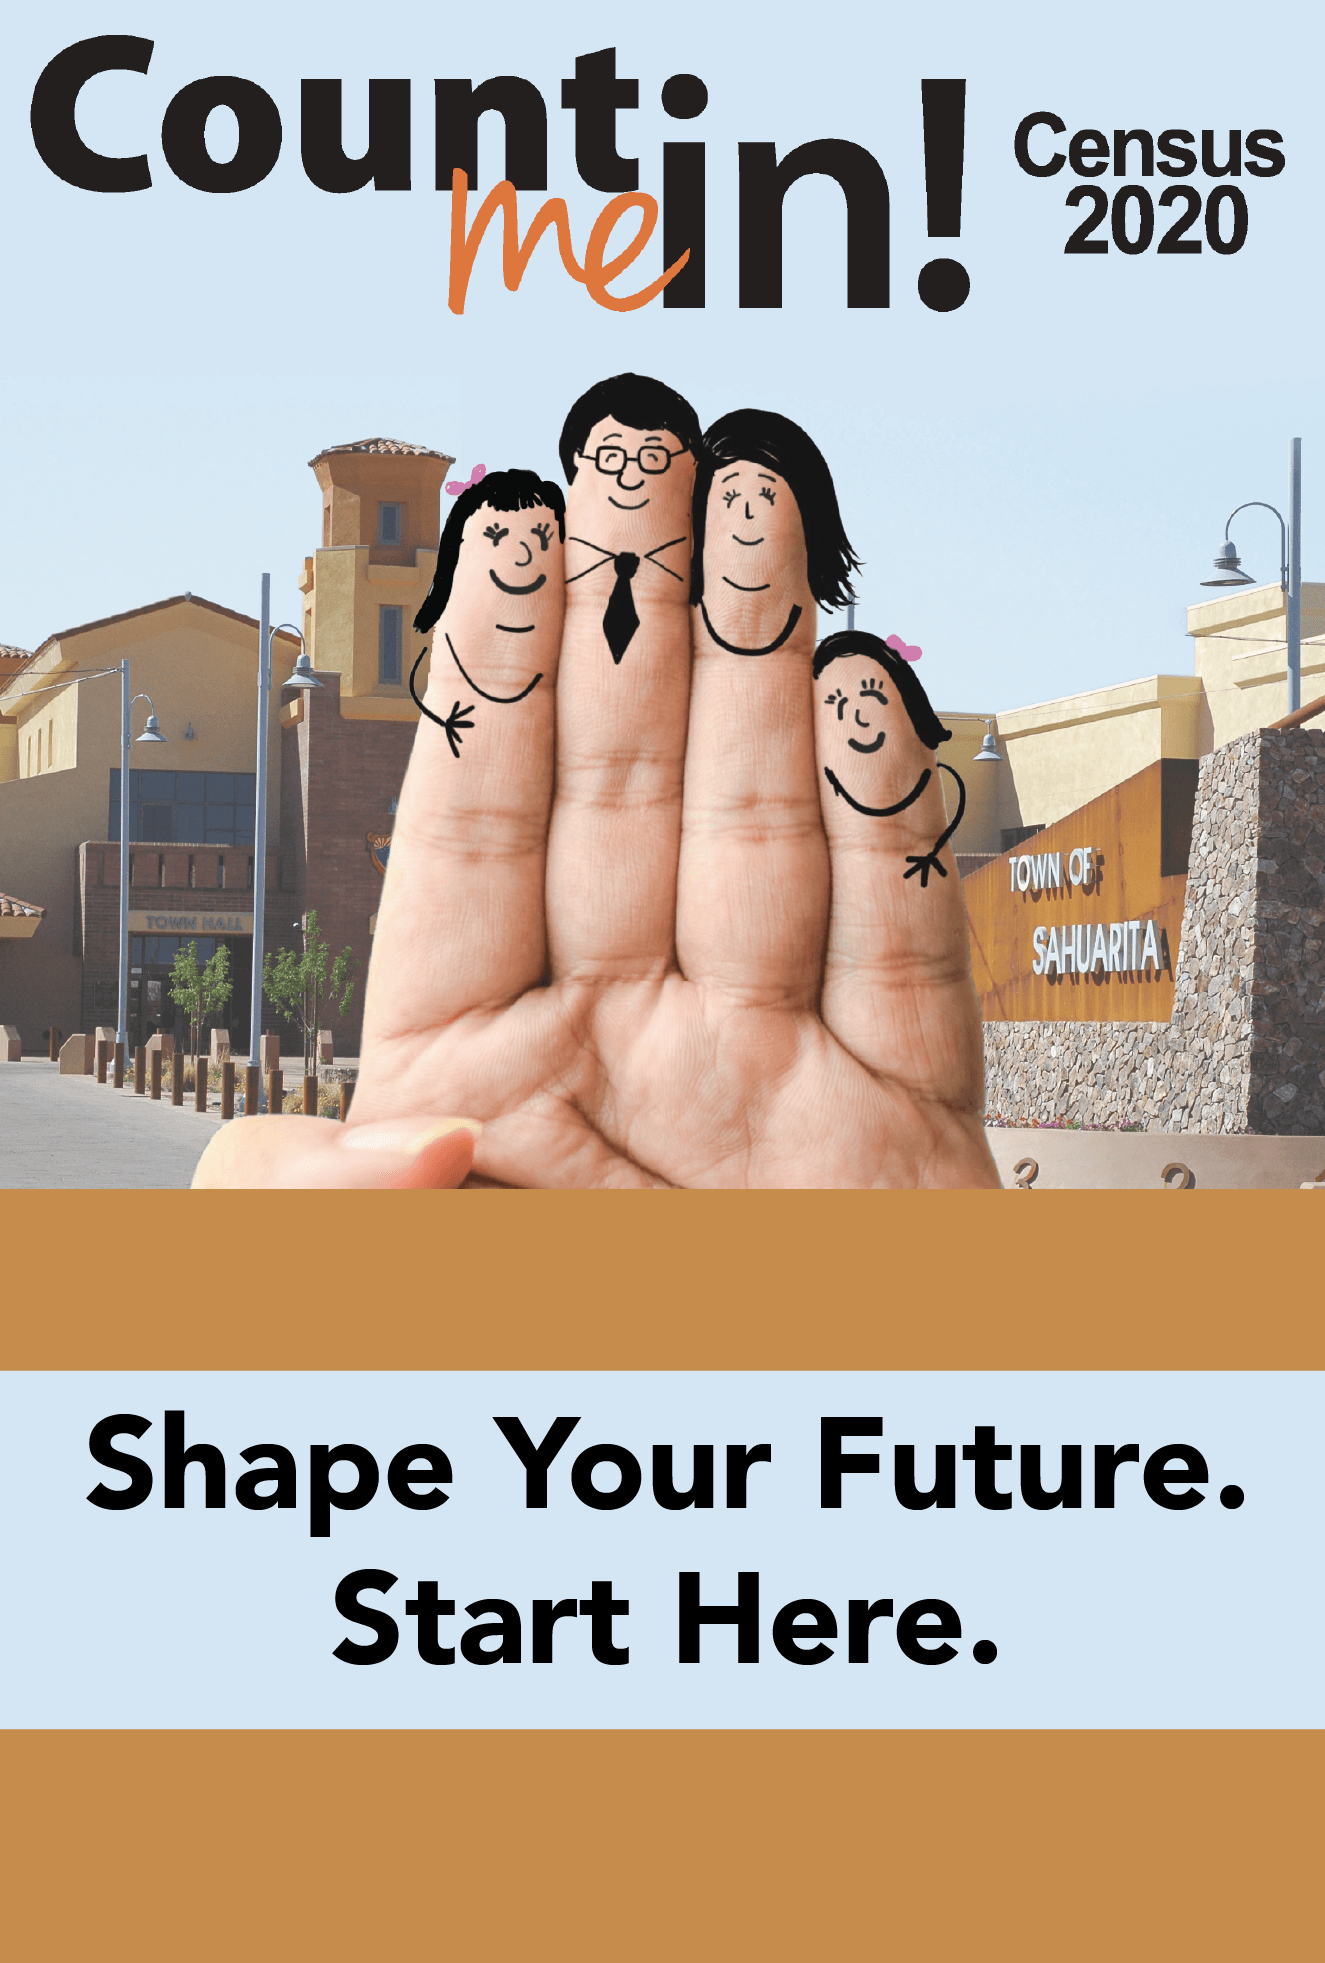 image of hand with family faces drawn in ink on fingers in front of sahuarita town hall sundial